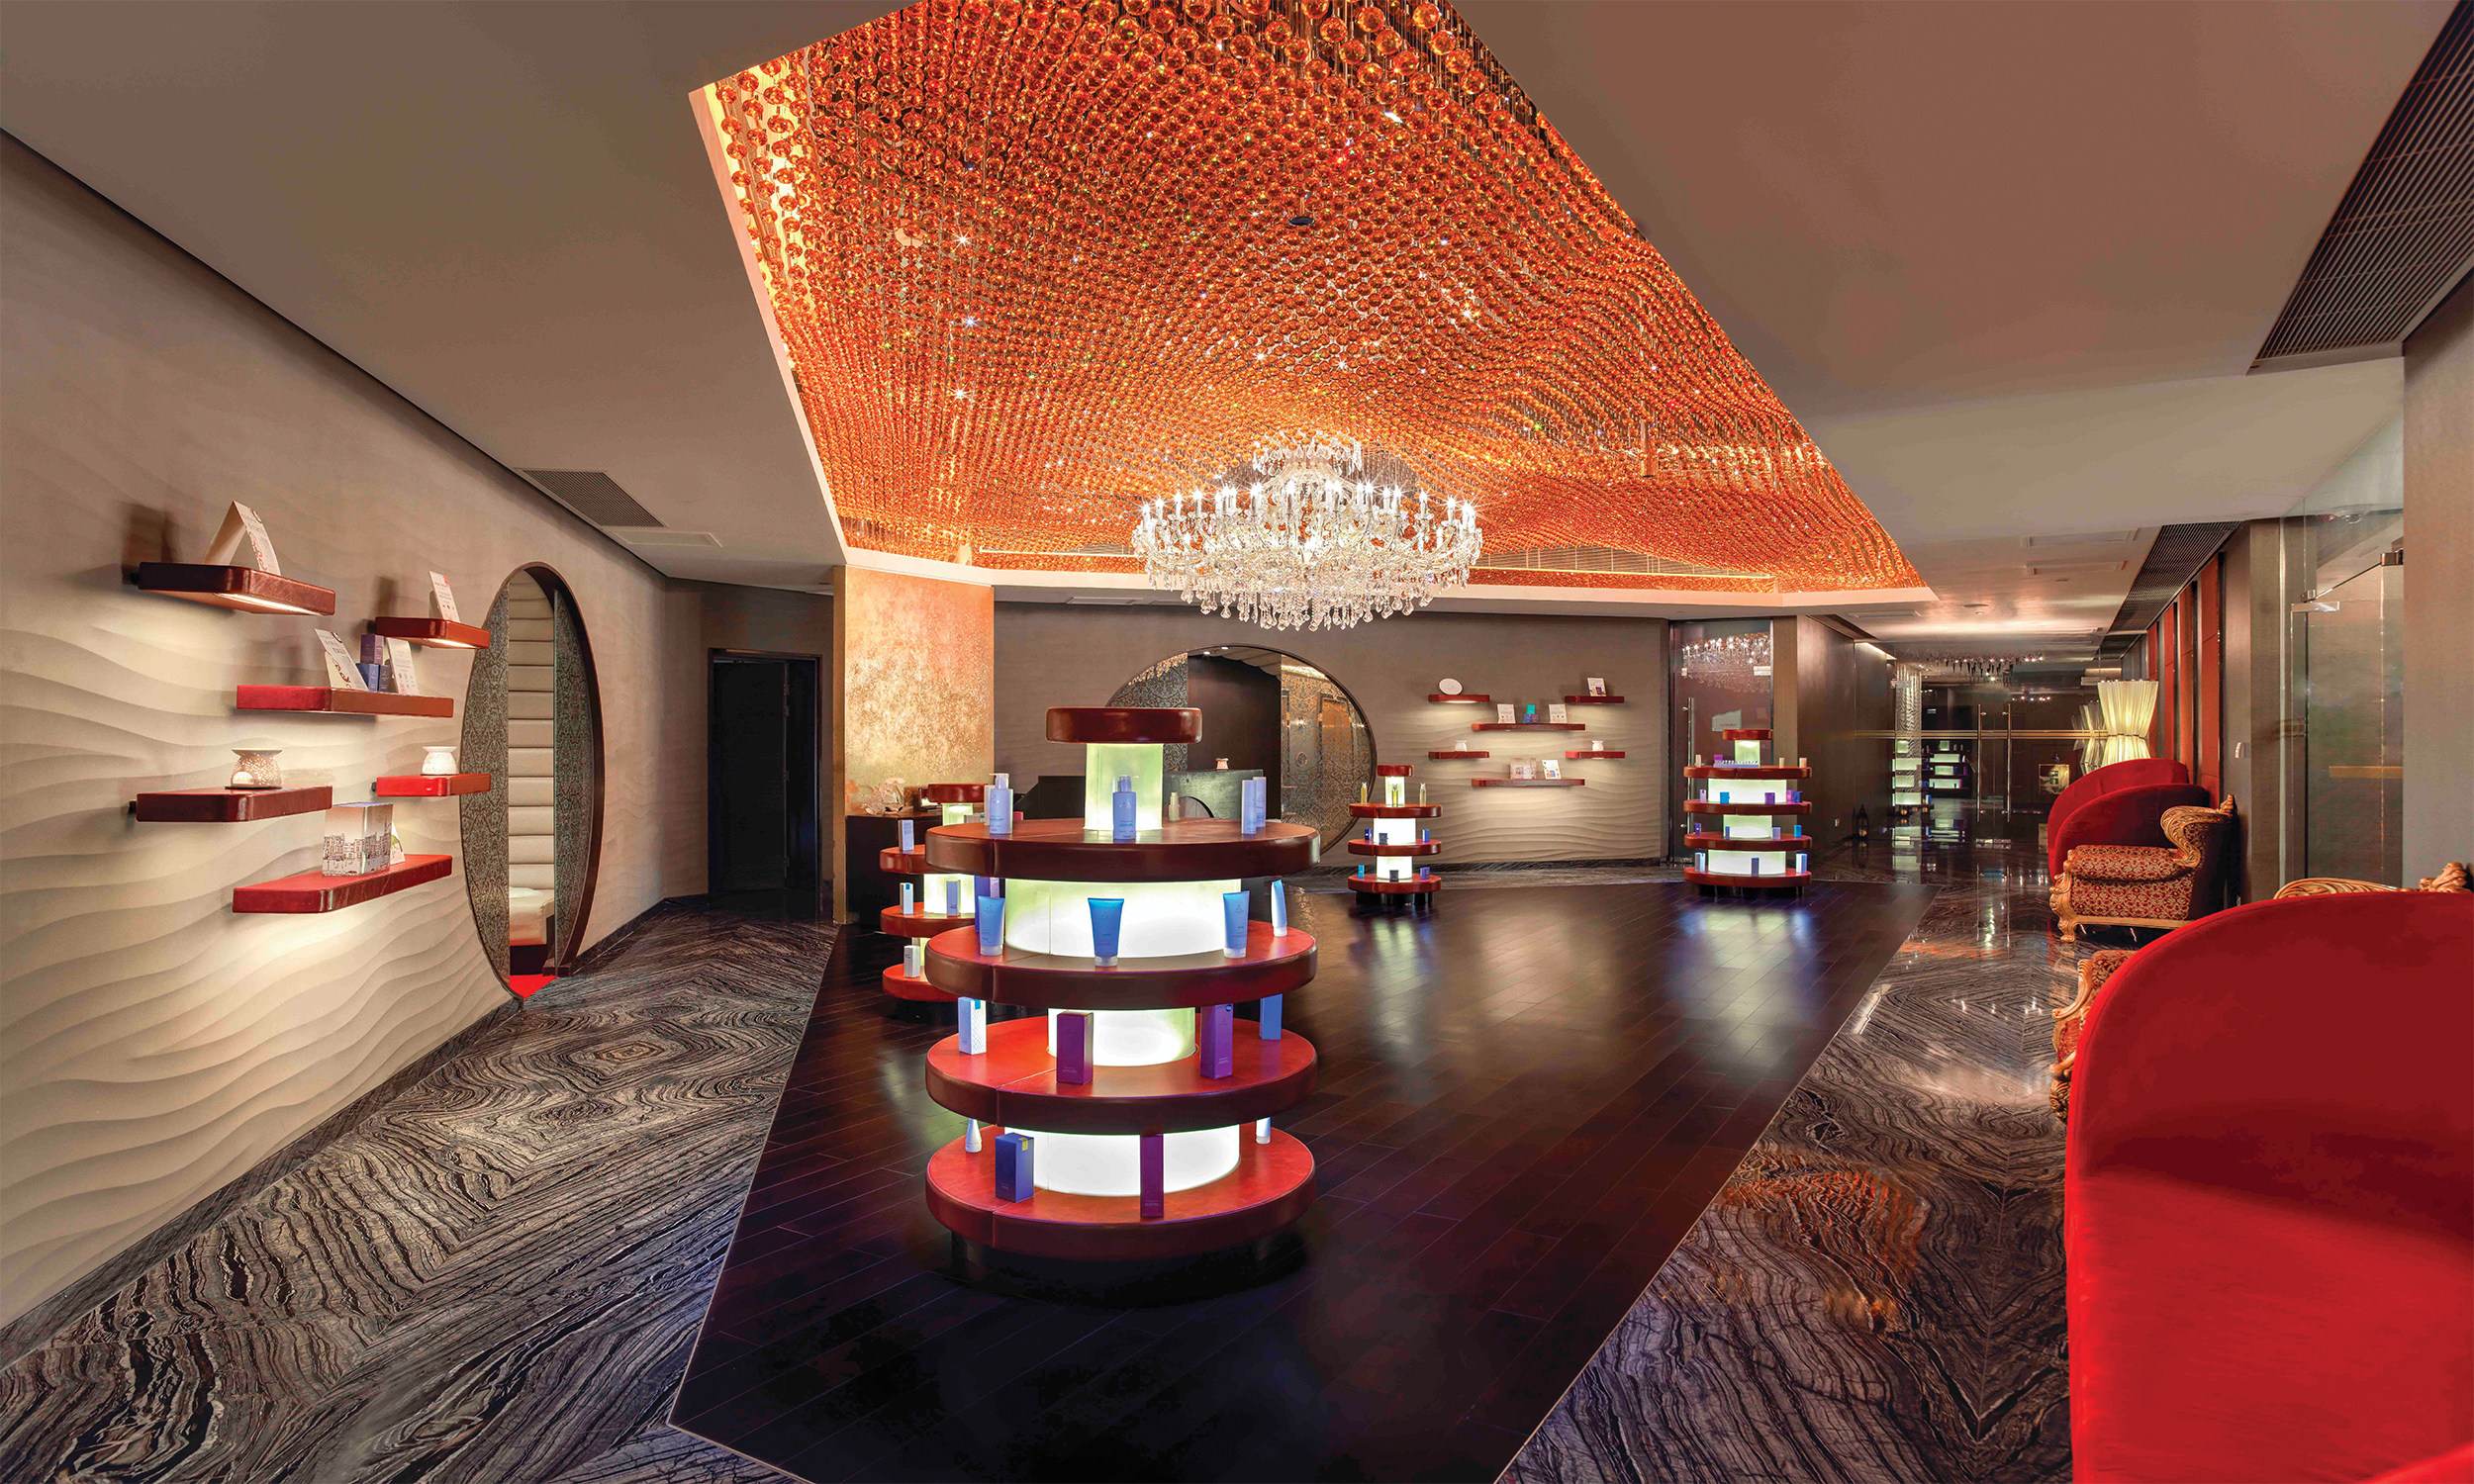 The Spa at Grand Lisboa Interior